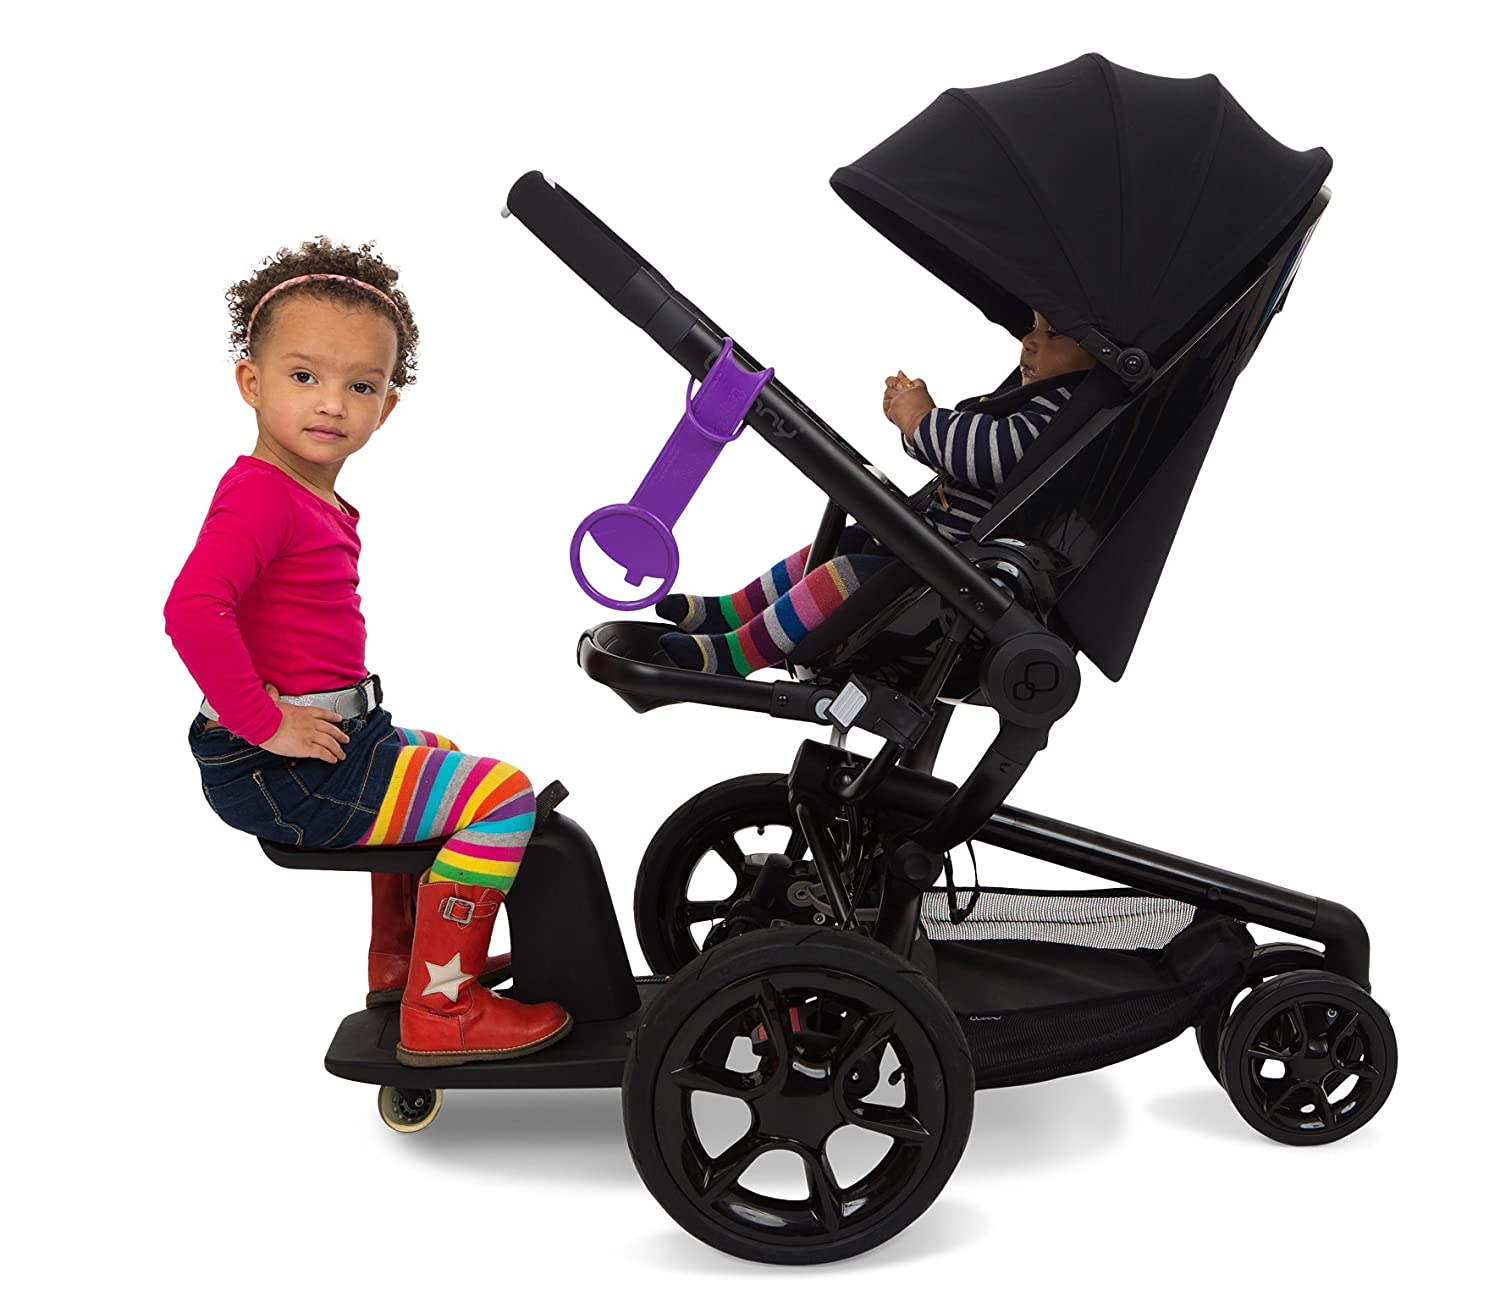 Amazon.com : Kleine Dreumes Kid Sit Wheel Board and Seat - Gray : Toy Playboards : Baby